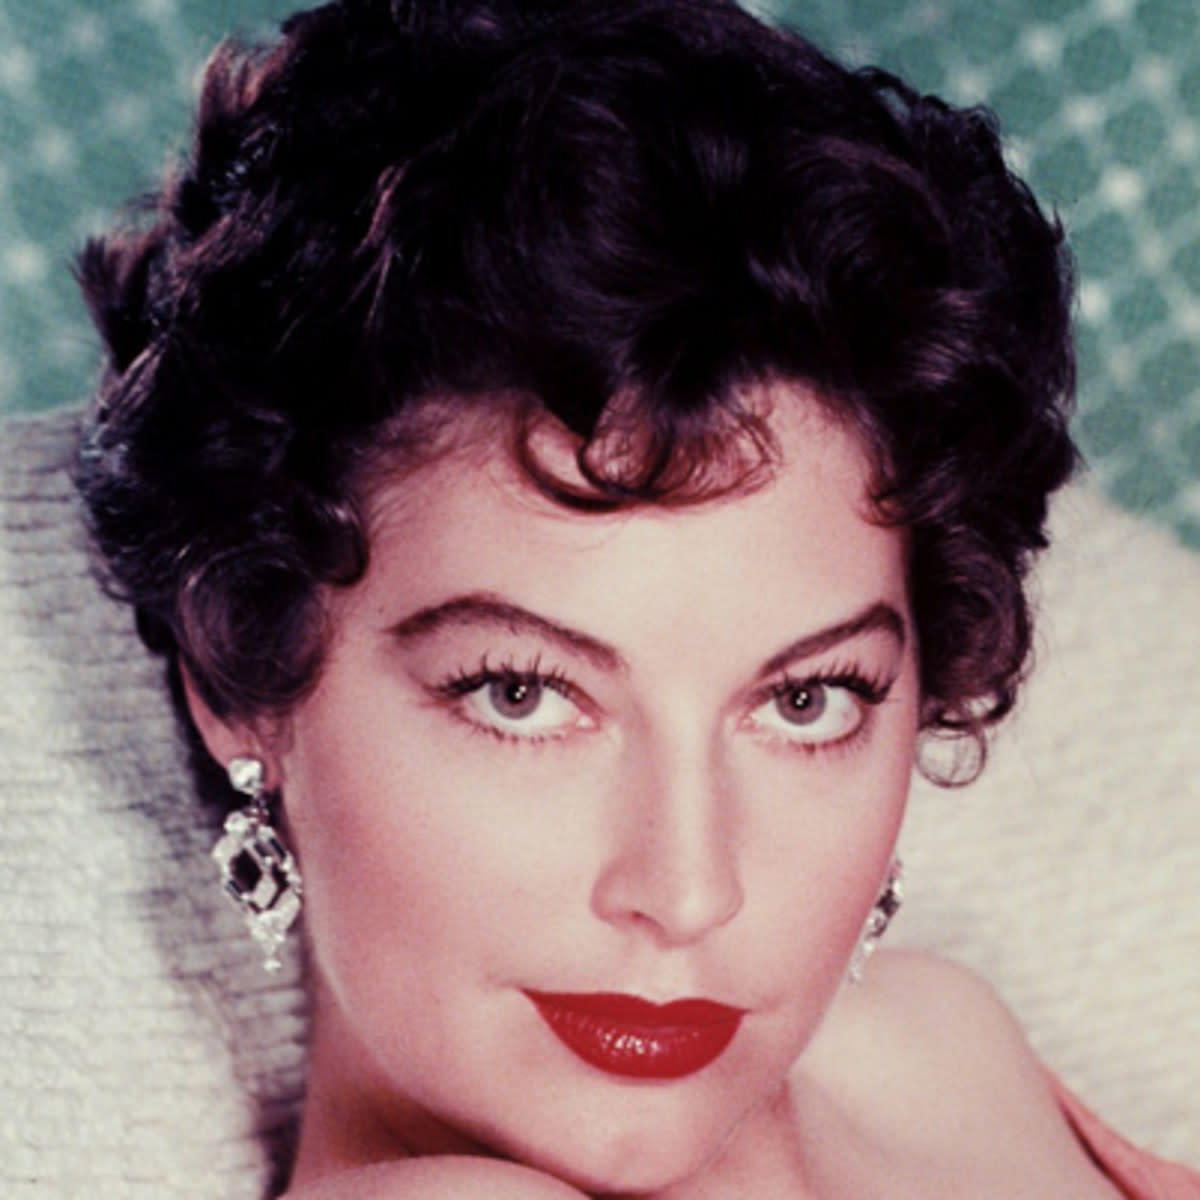 The lovely Ava Gardner, one of my personal favorite celebrity females.